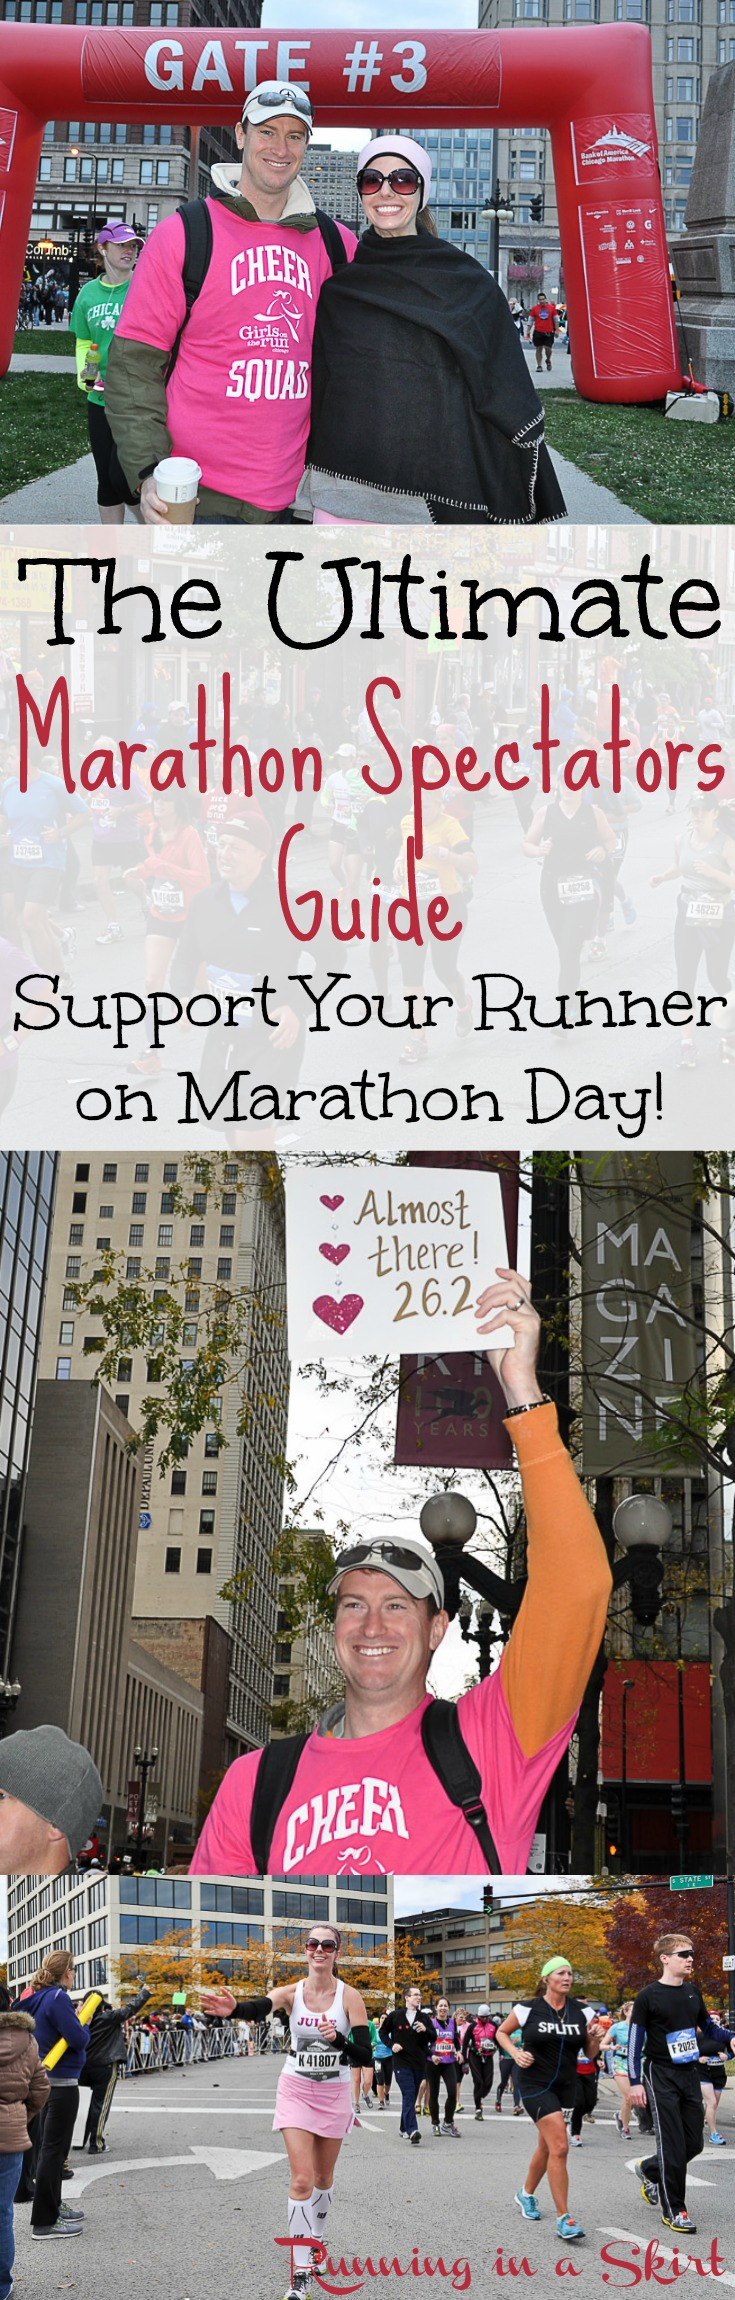 The Ultimate Marathon Specators Guide